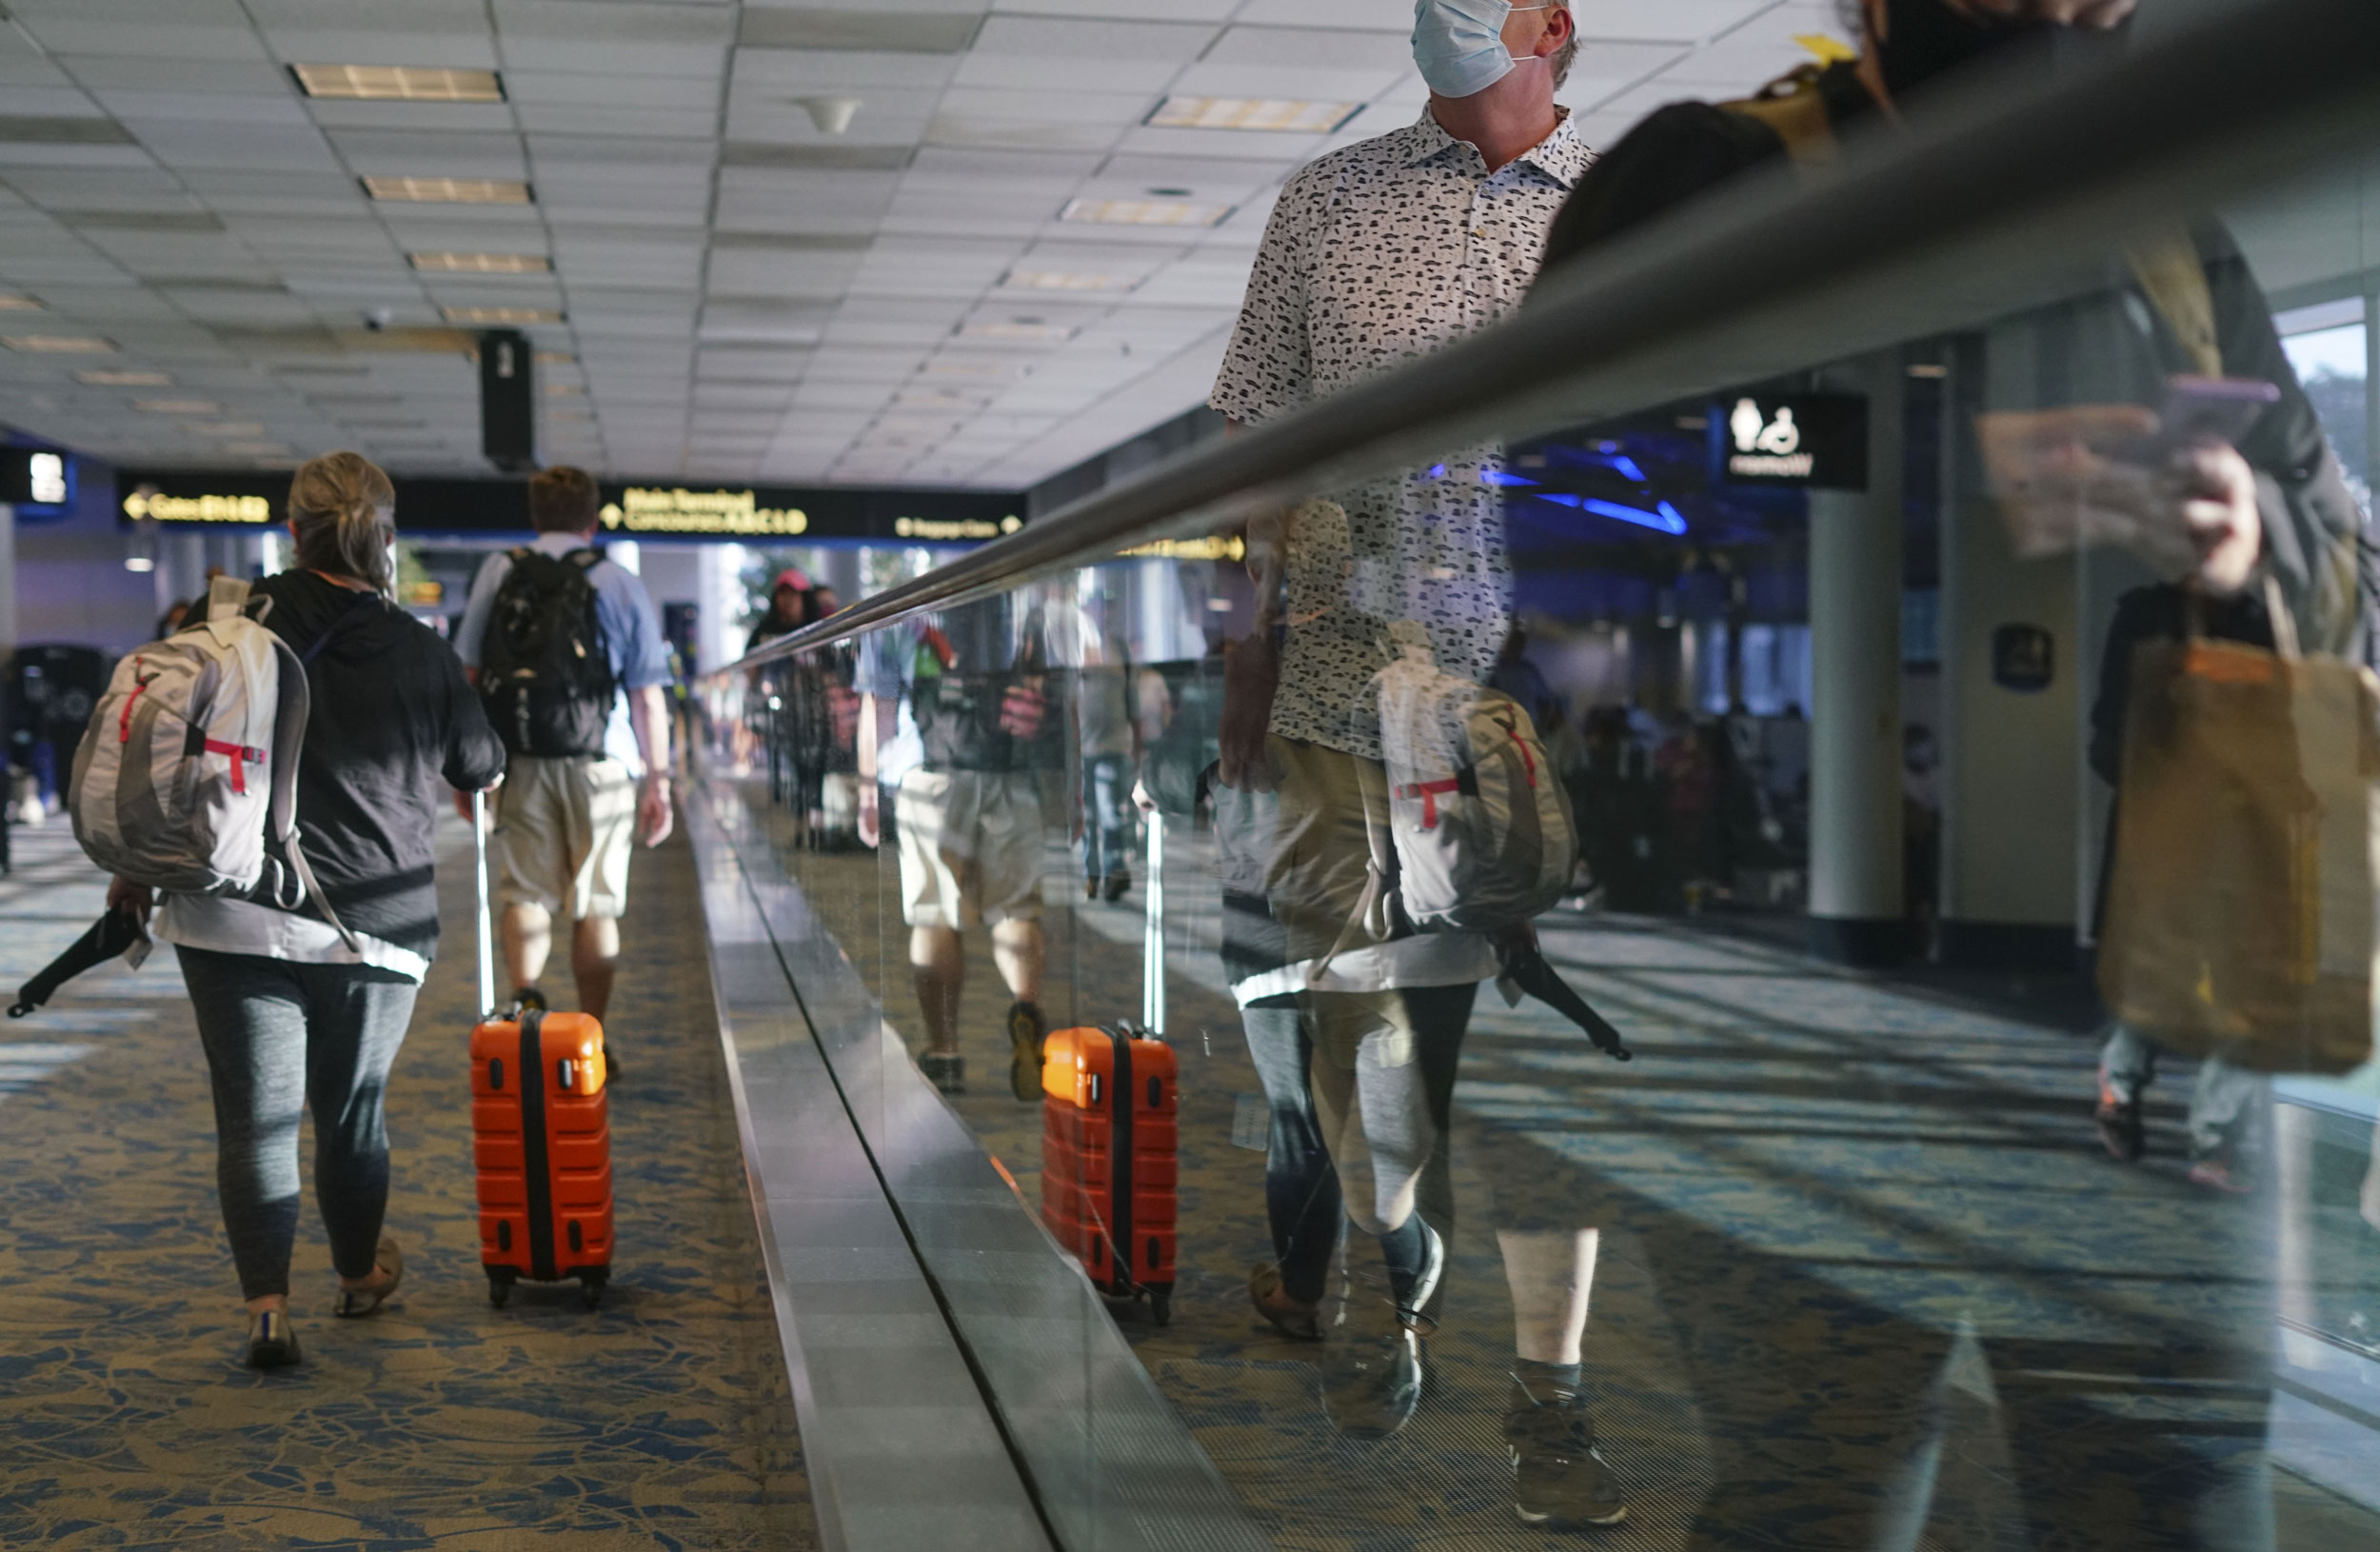 Travelers walk through the Charlotte Douglas International Airport in Charlotte, North Carolina, on June 4.